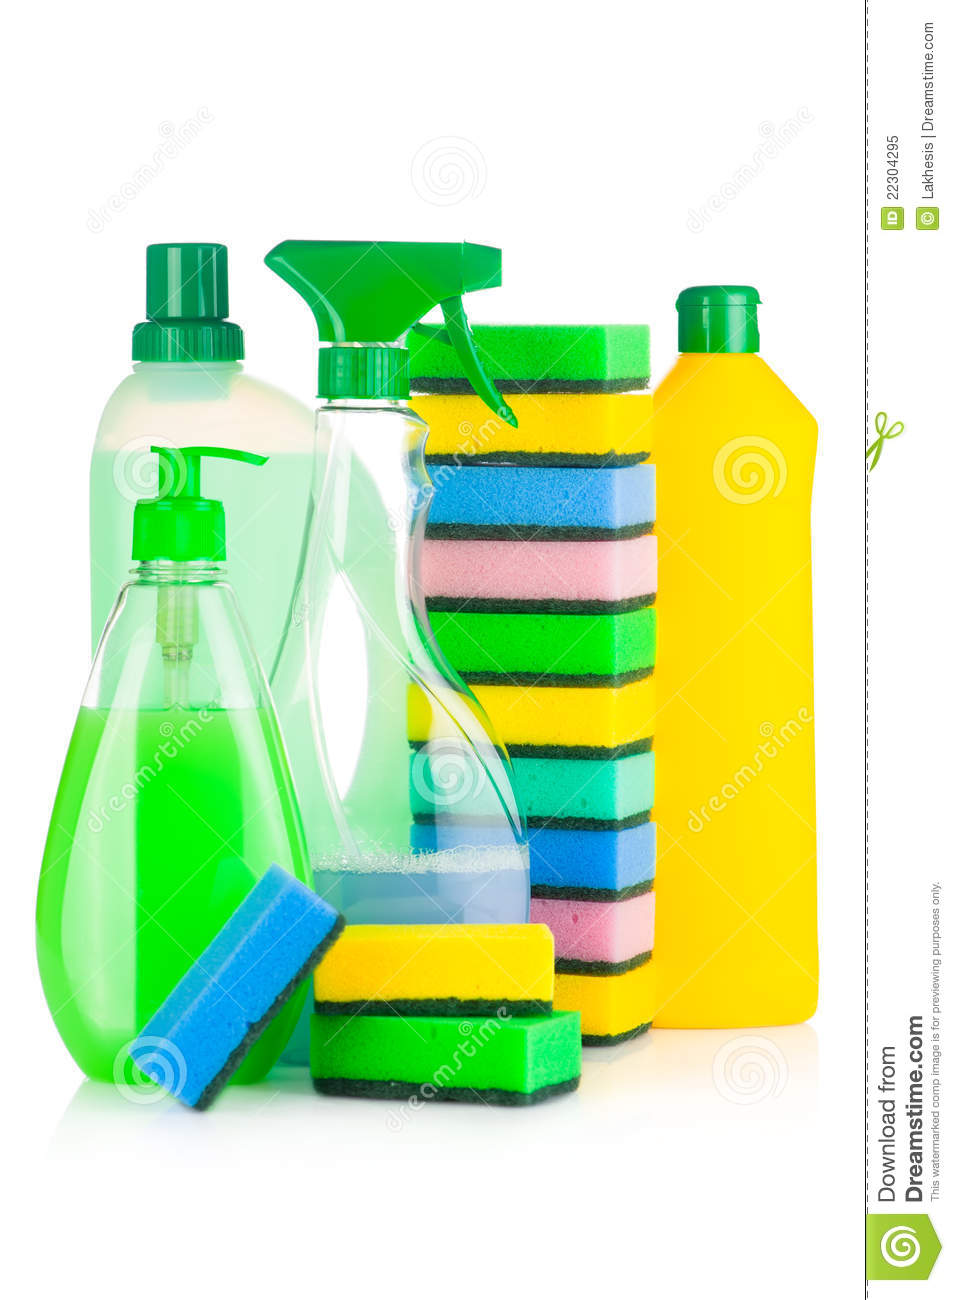 Building Cleaning Equipment : Cleaning house supplies for